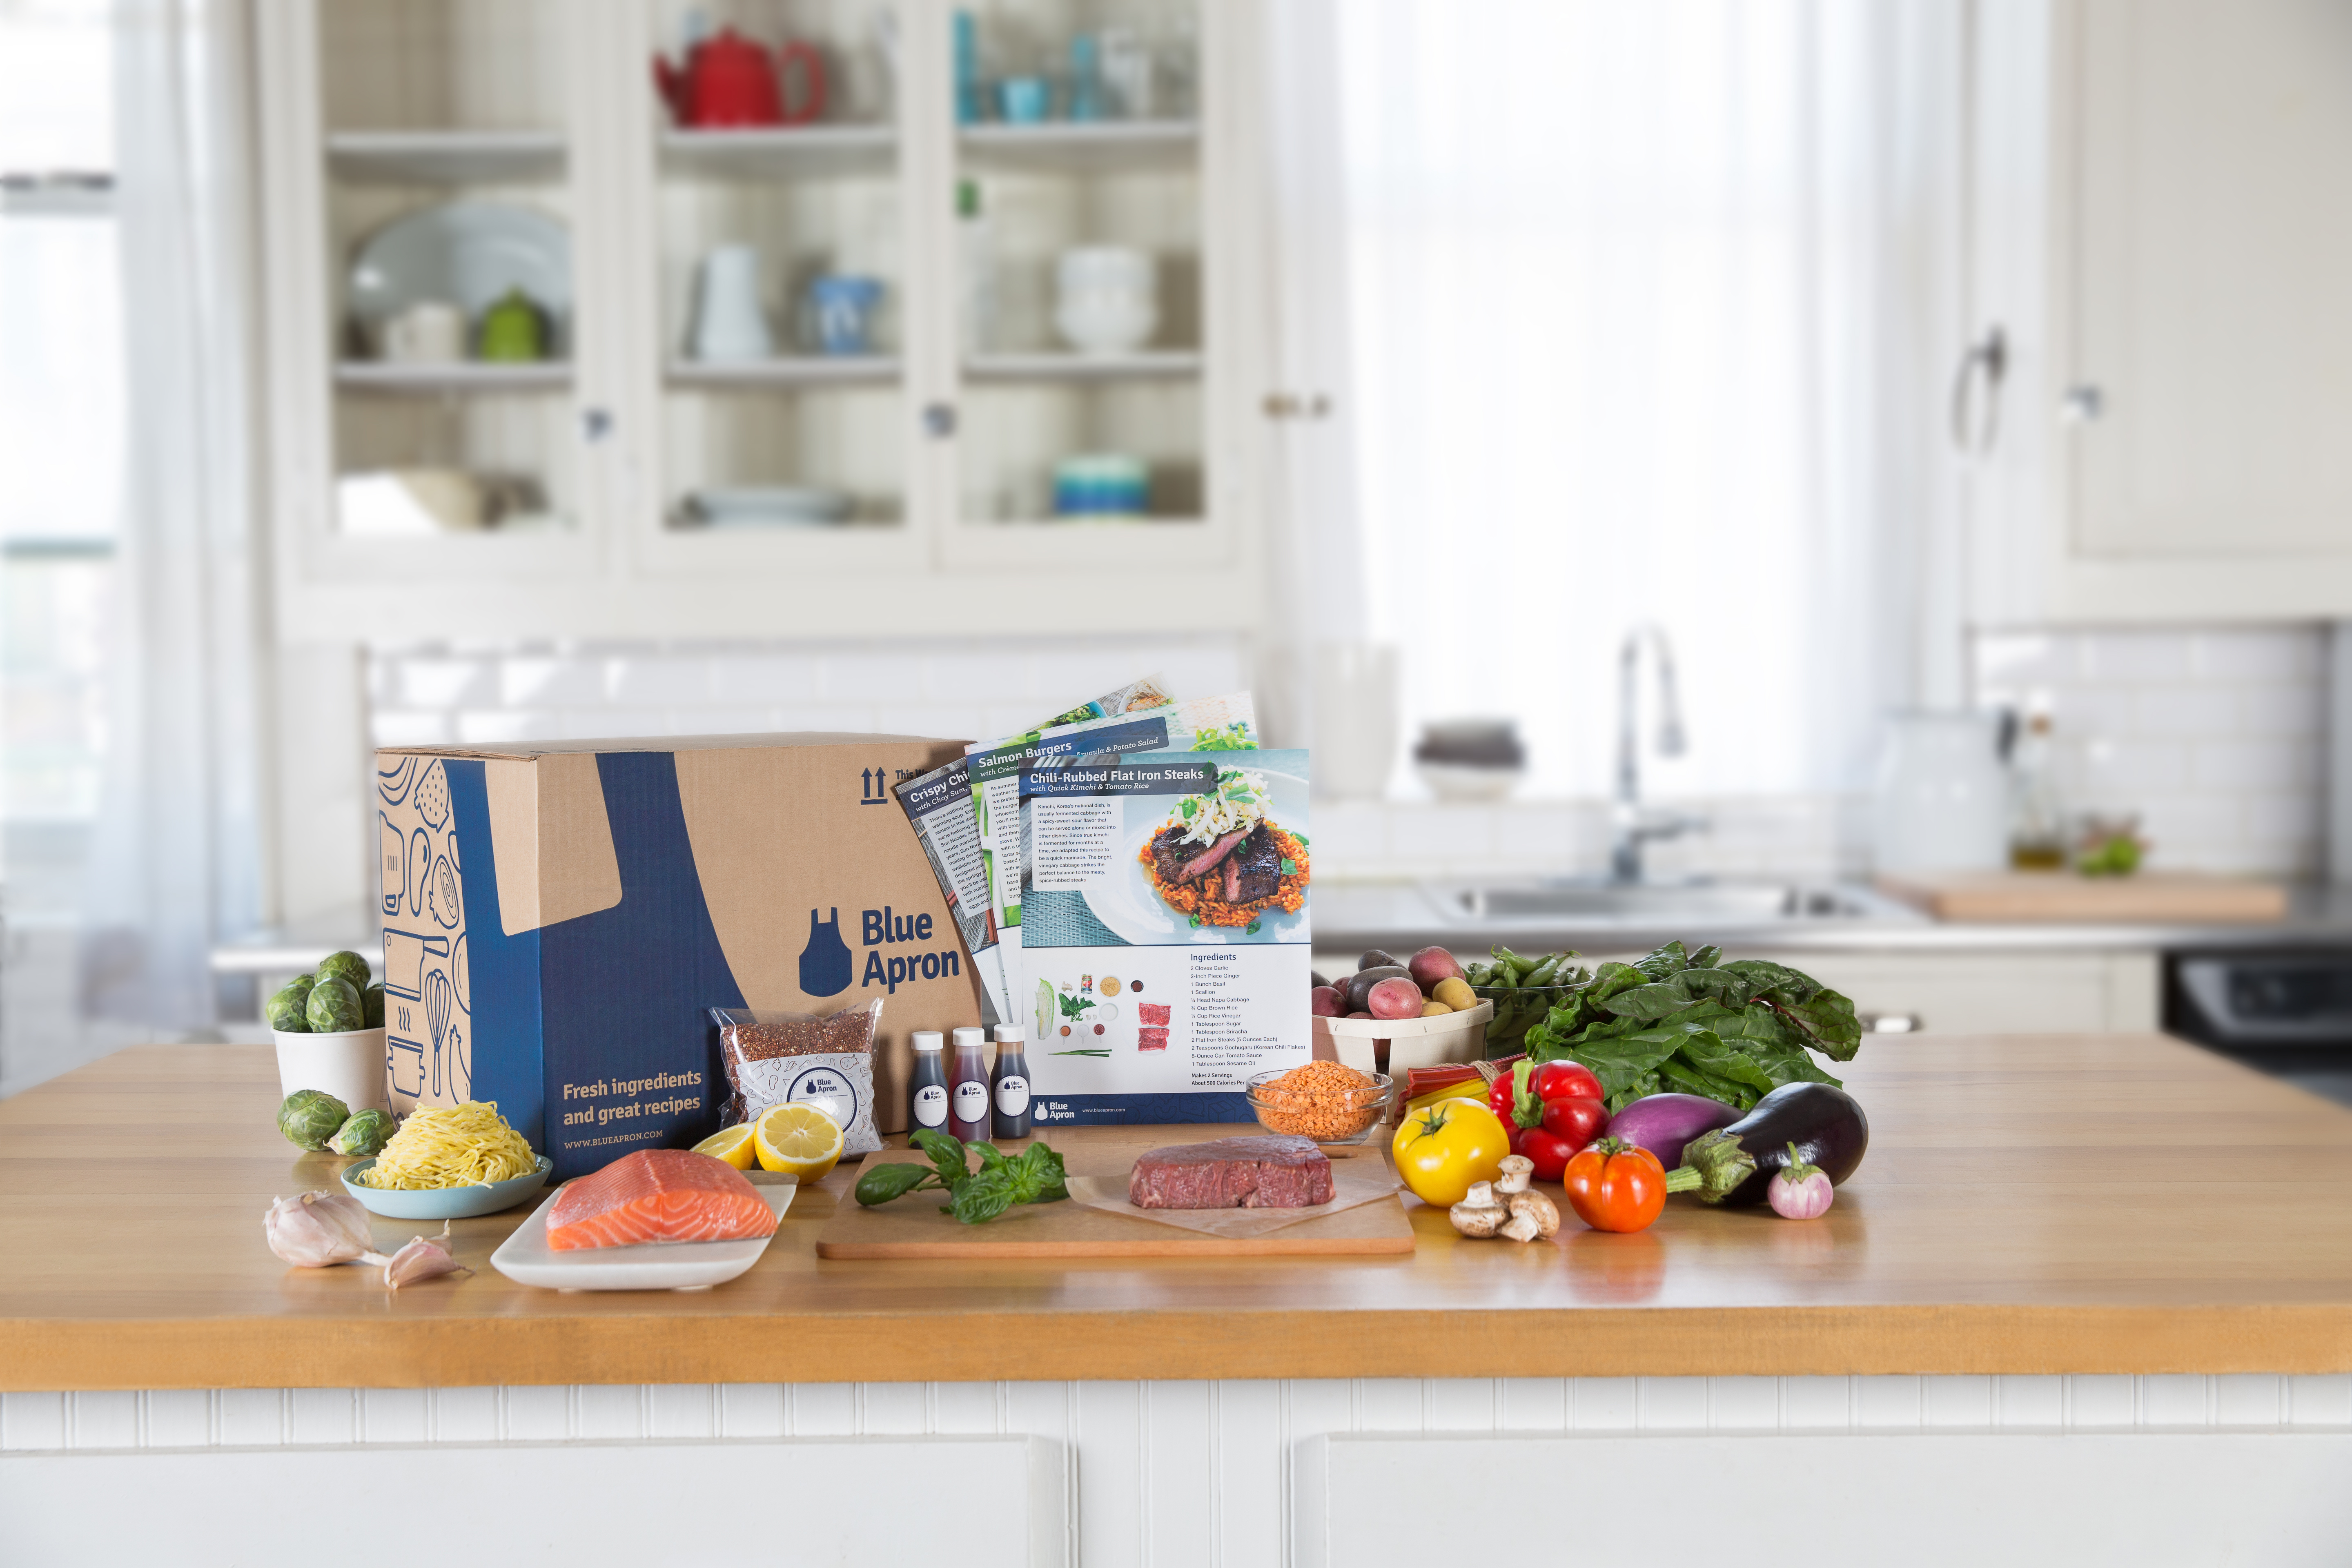 Blue apron working conditions - File Blue Apron Jpg